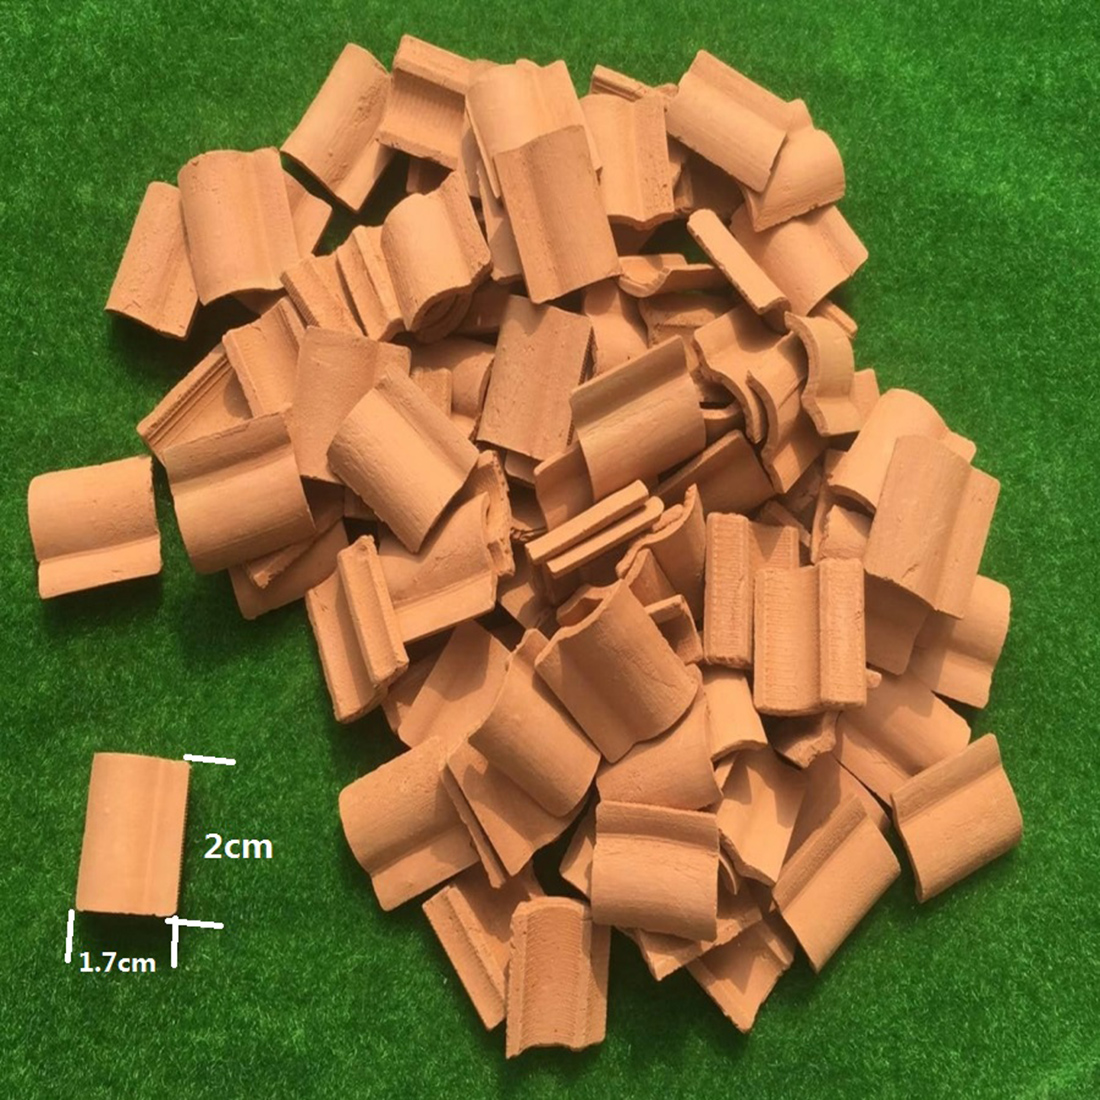 25Pcs/set 1:12 Scale DIY Sand Table Architecture Miniature Roof Tiles WWII Scene Mini Tiles Model Accessories  - Nacarat